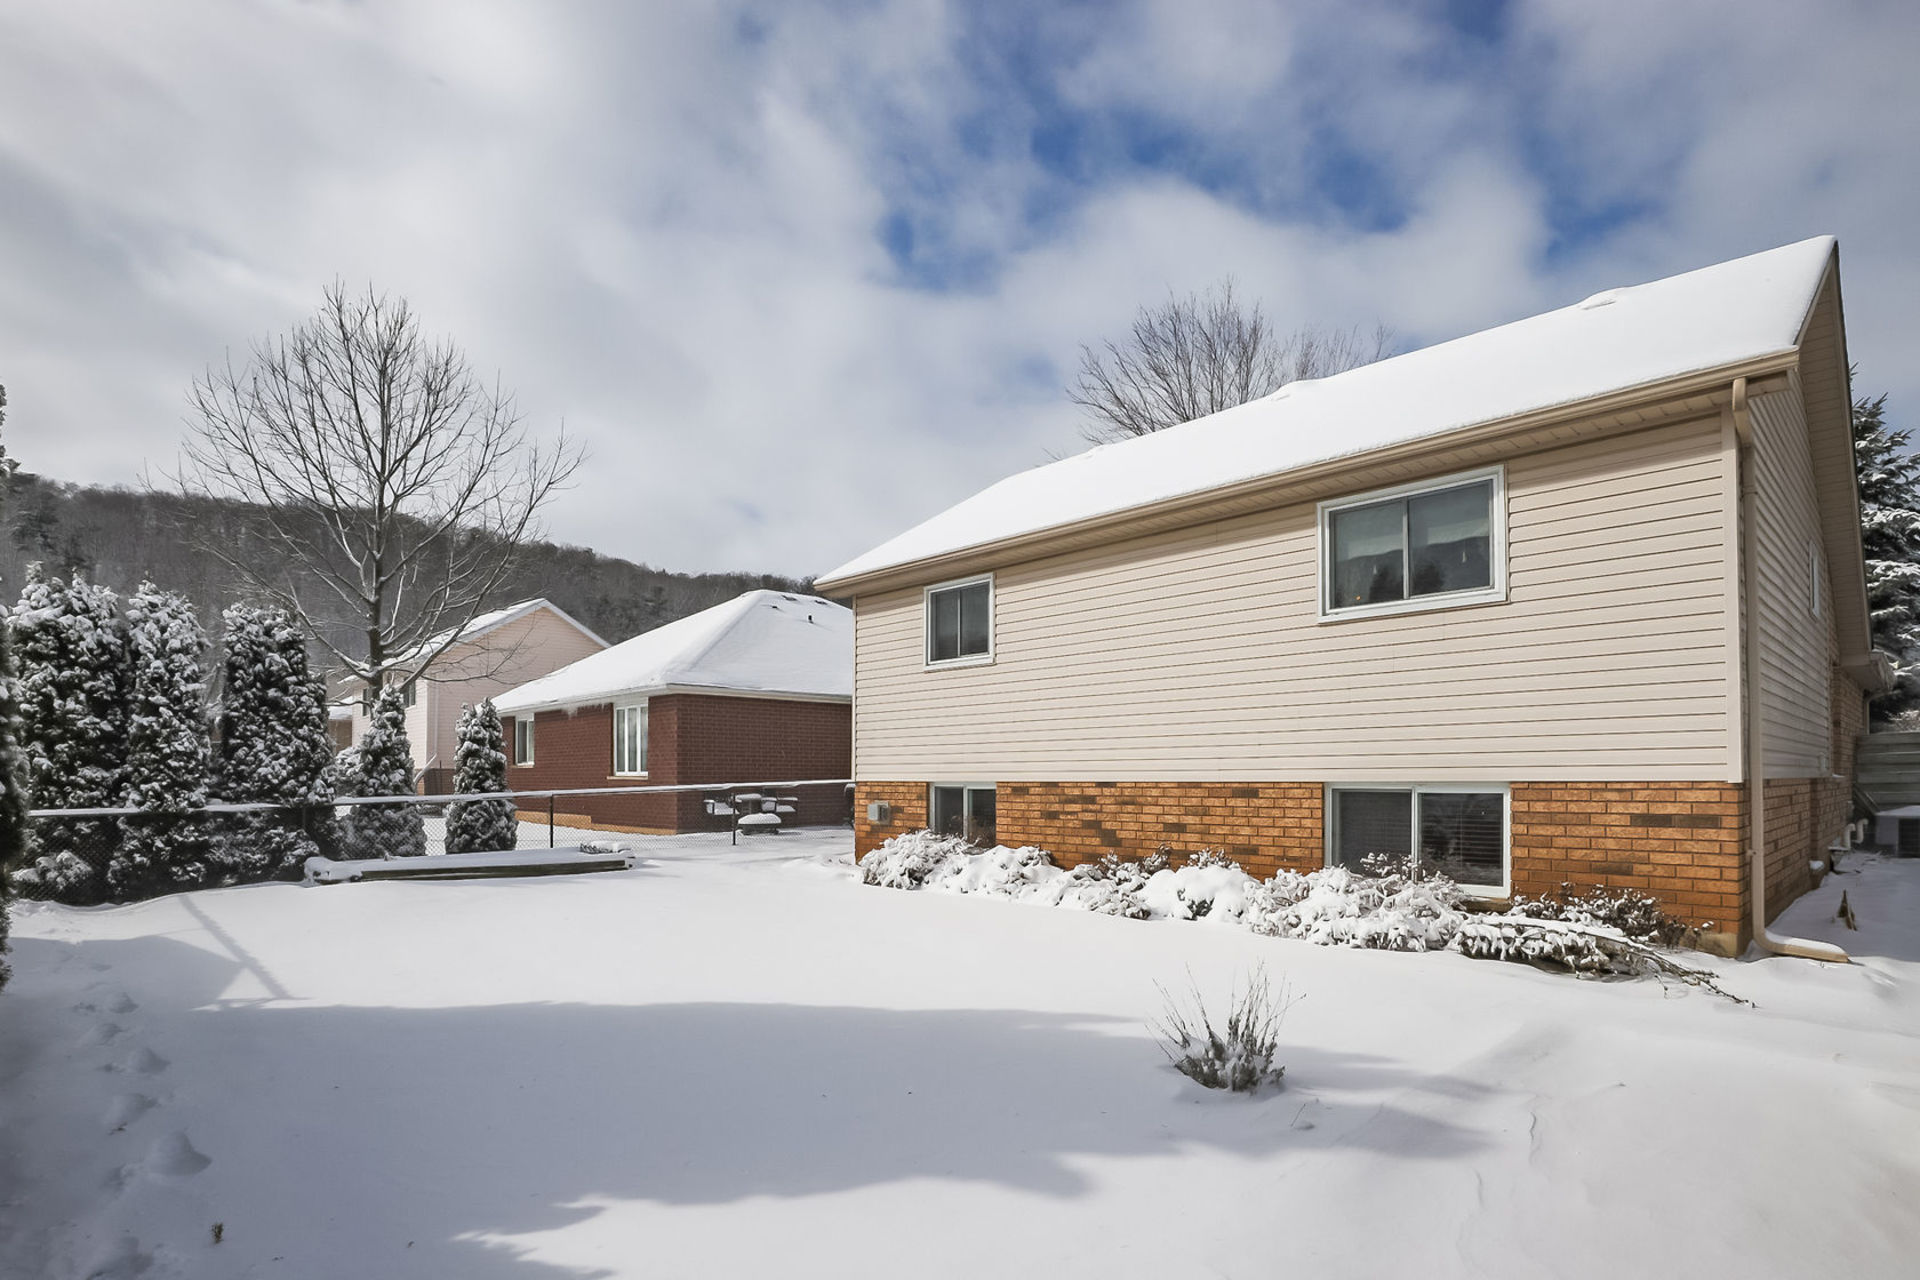 virtual-tour-292122-47 at 47 Colonial Cresent, Grimsby